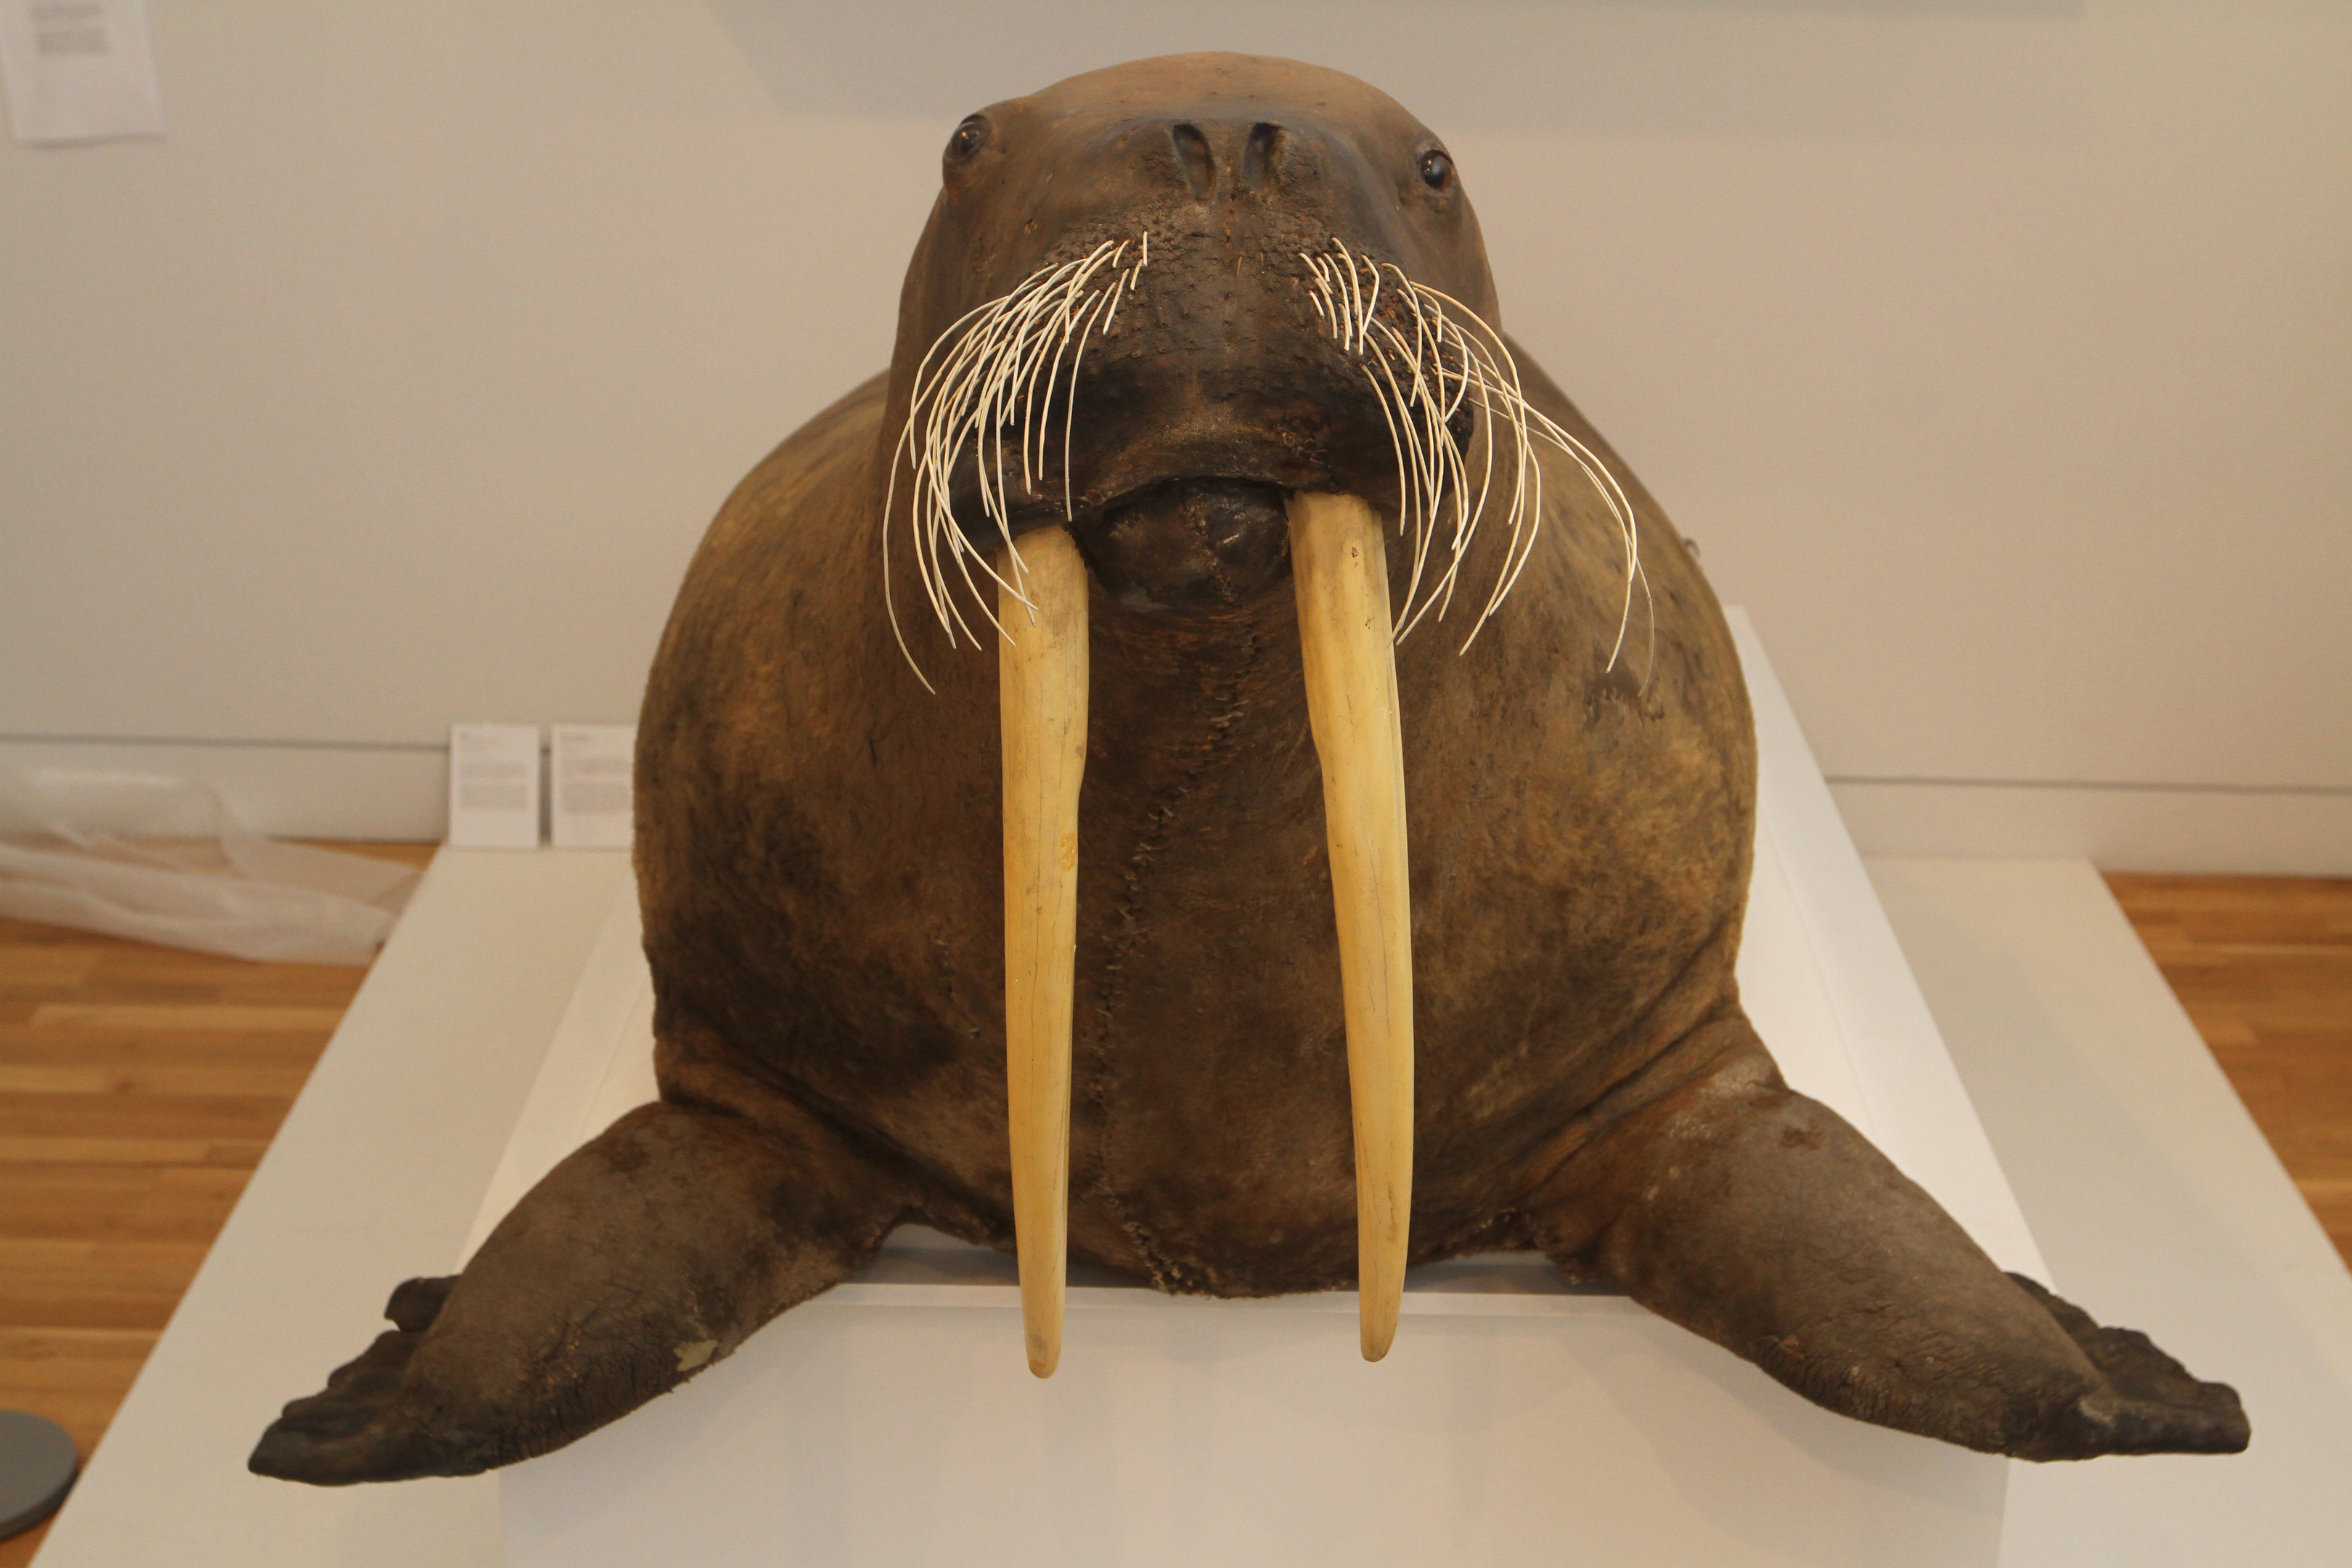 Mhairi Edwards, Courier, McManus Galleries is holding a Dundee Preserves exhibition which contains some very interesting artefacts.  Picture shows; the walrus from the exhibit. Wednesday 7th June.